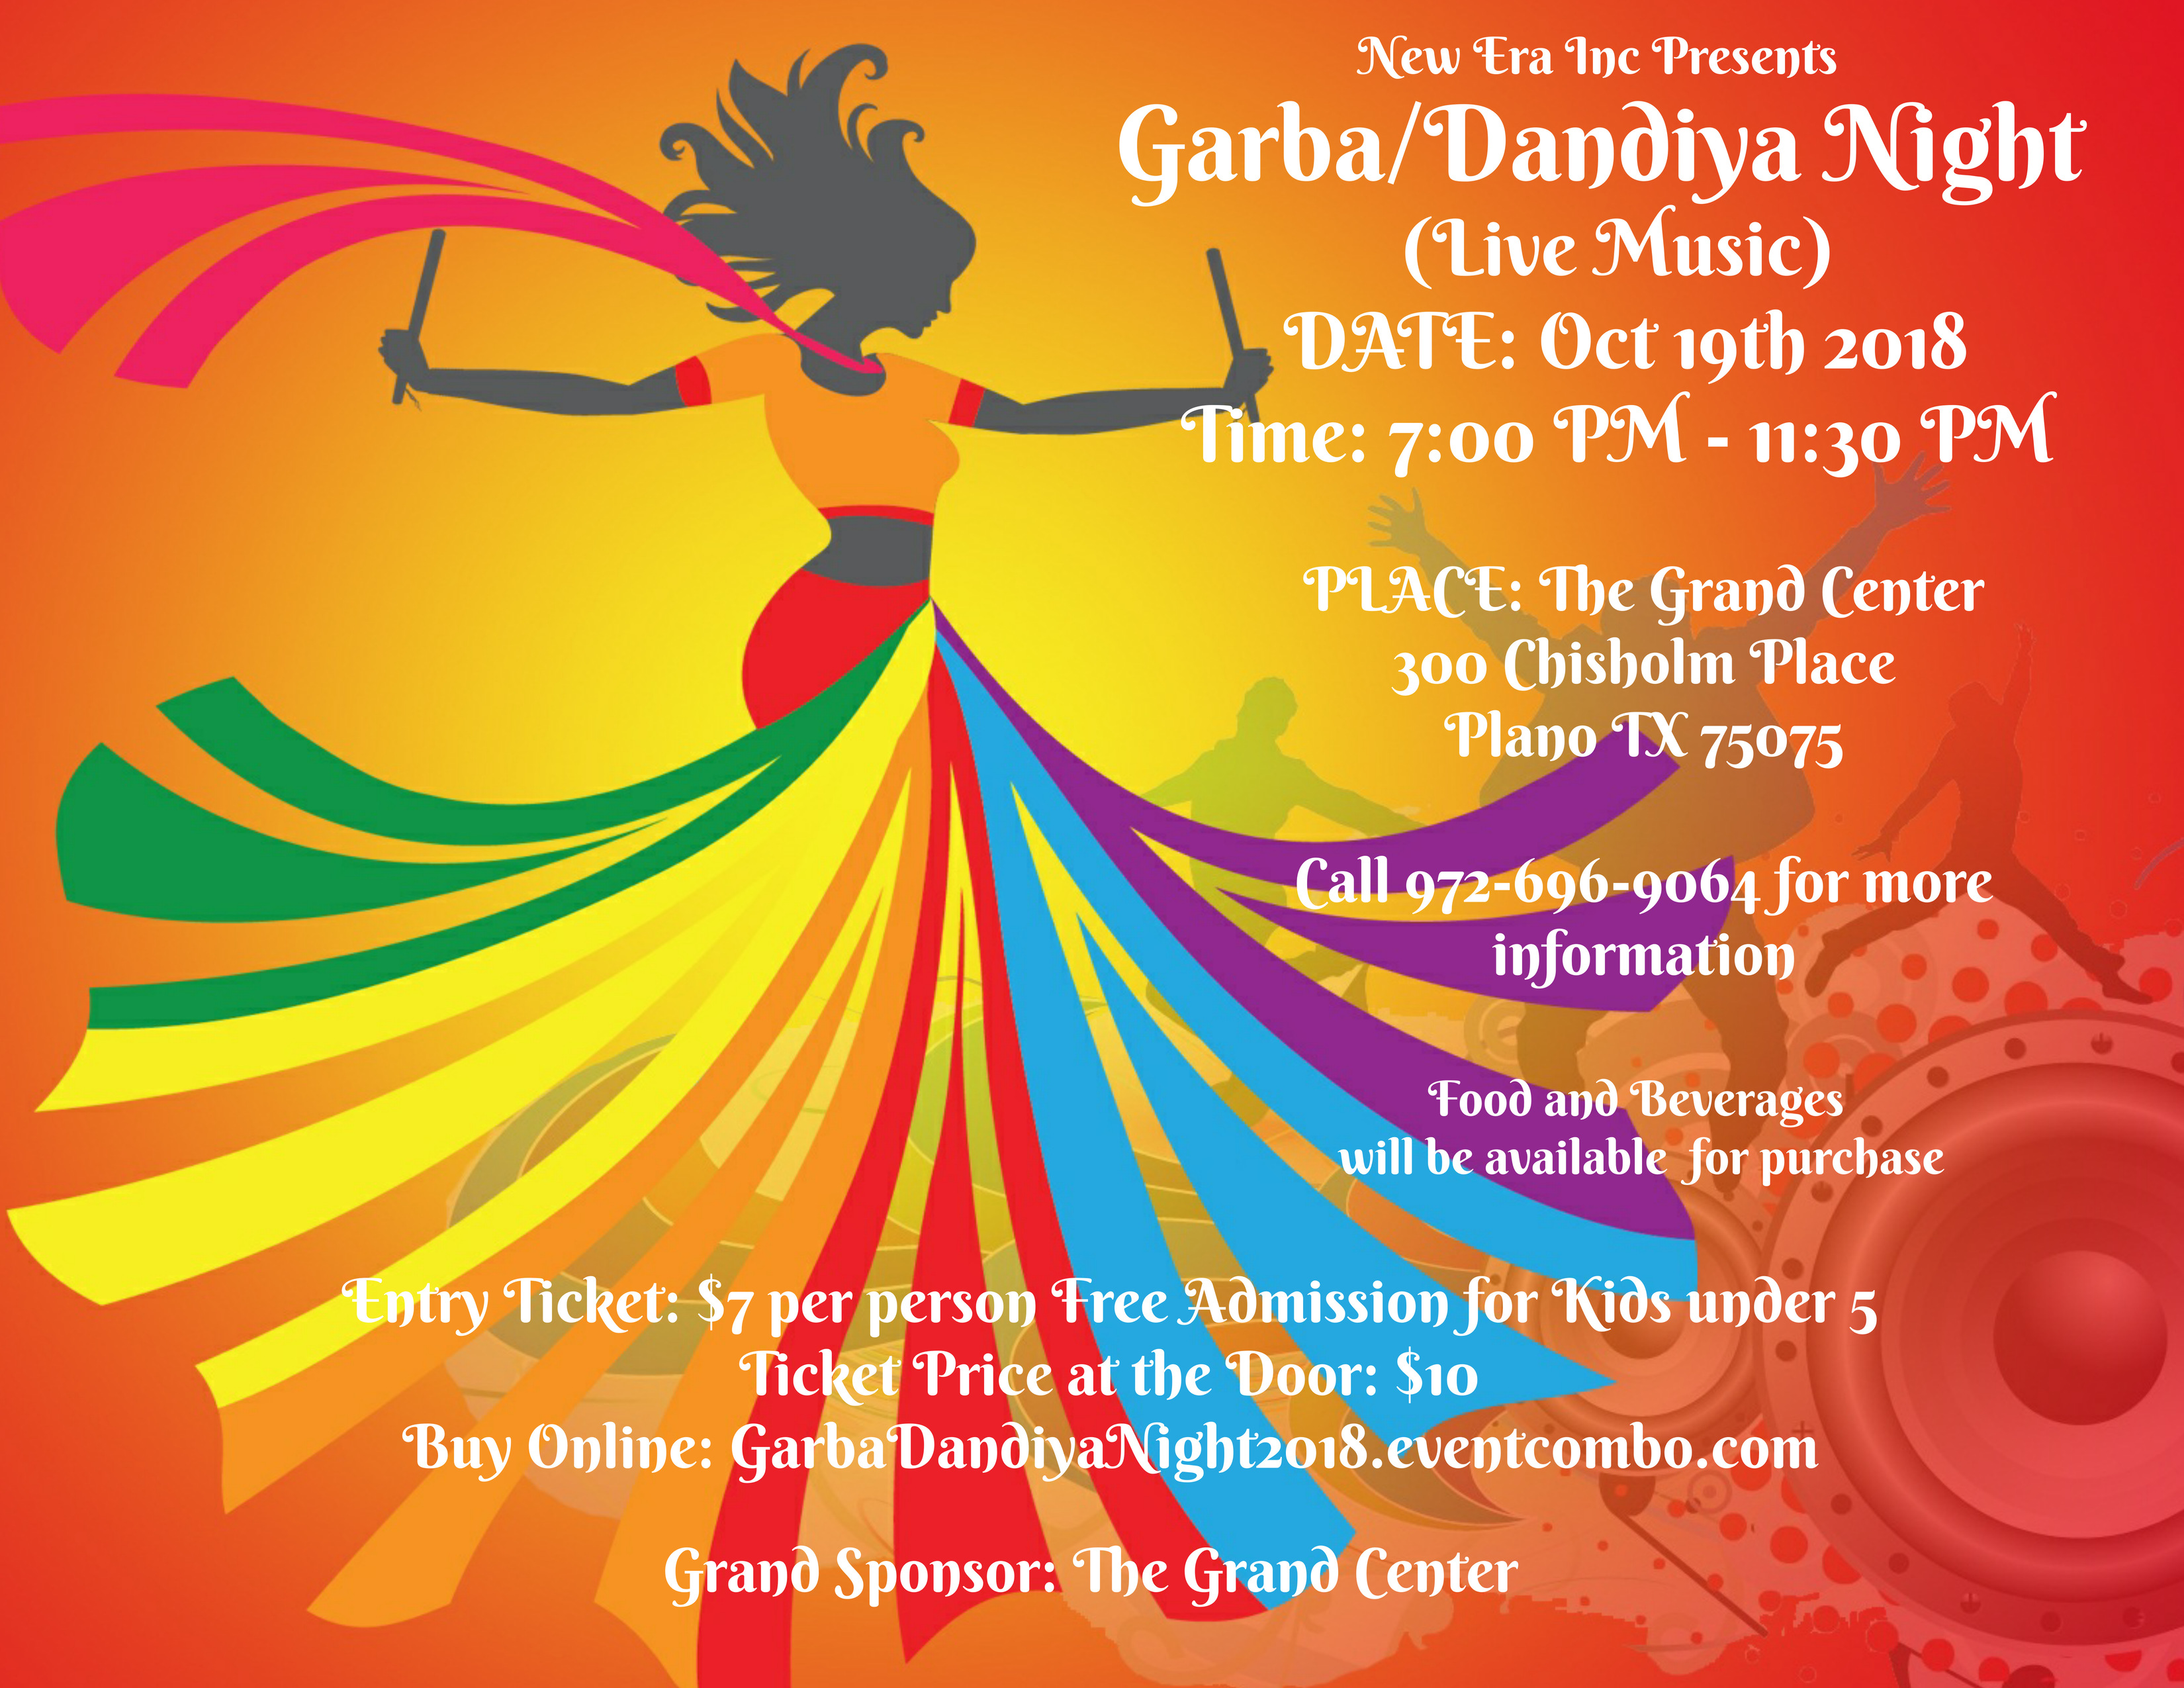 Garba Dandiya Night Eventcombo